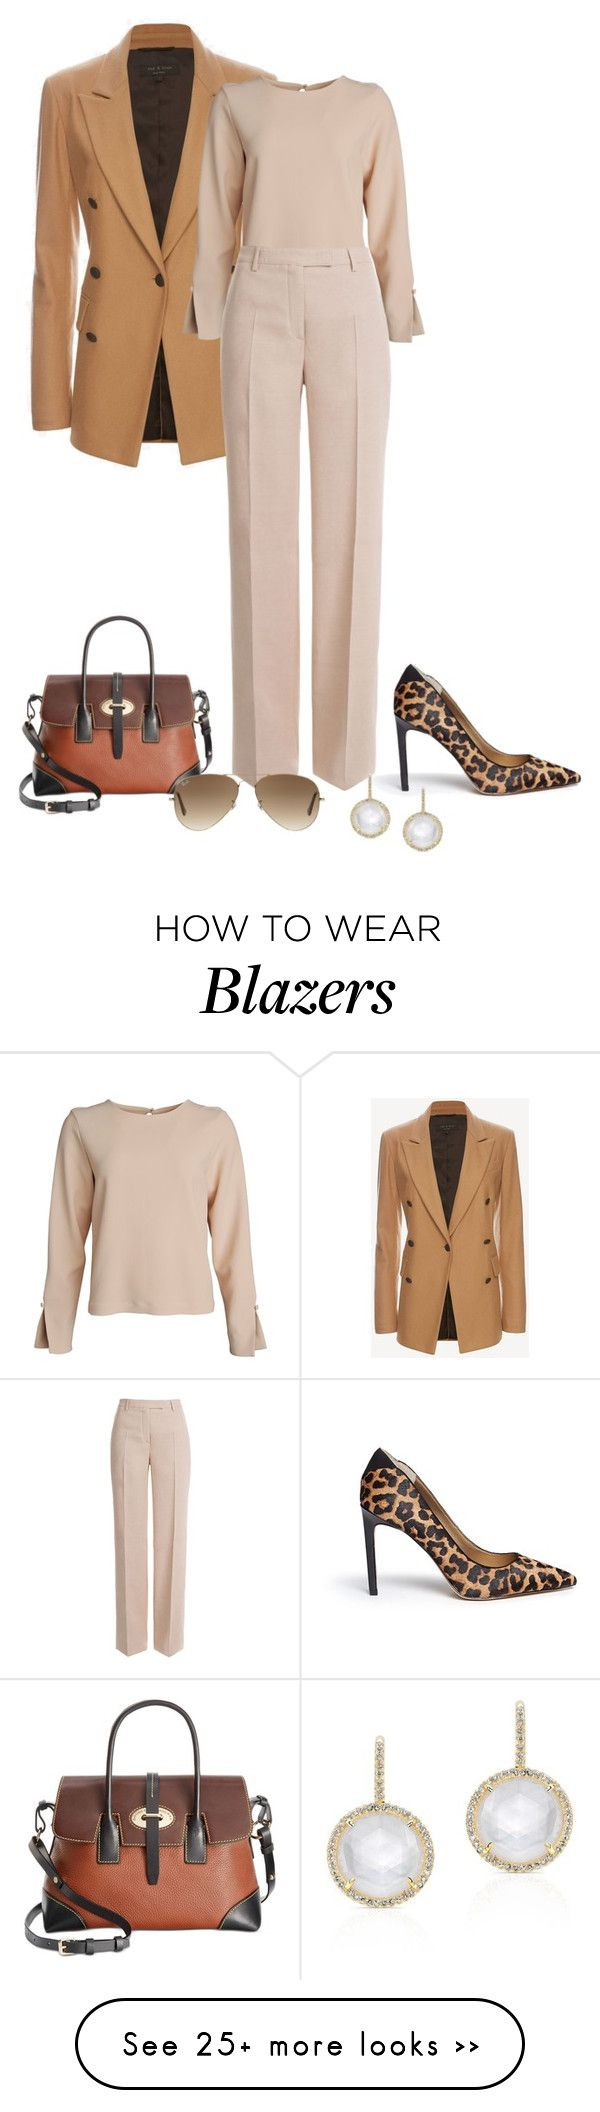 """Untitled #1968"" by elia72 on Polyvore featuring rag & bone, Emilio Pucci, Sam Edelman, Dooney & Bourke and Ray-Ban"